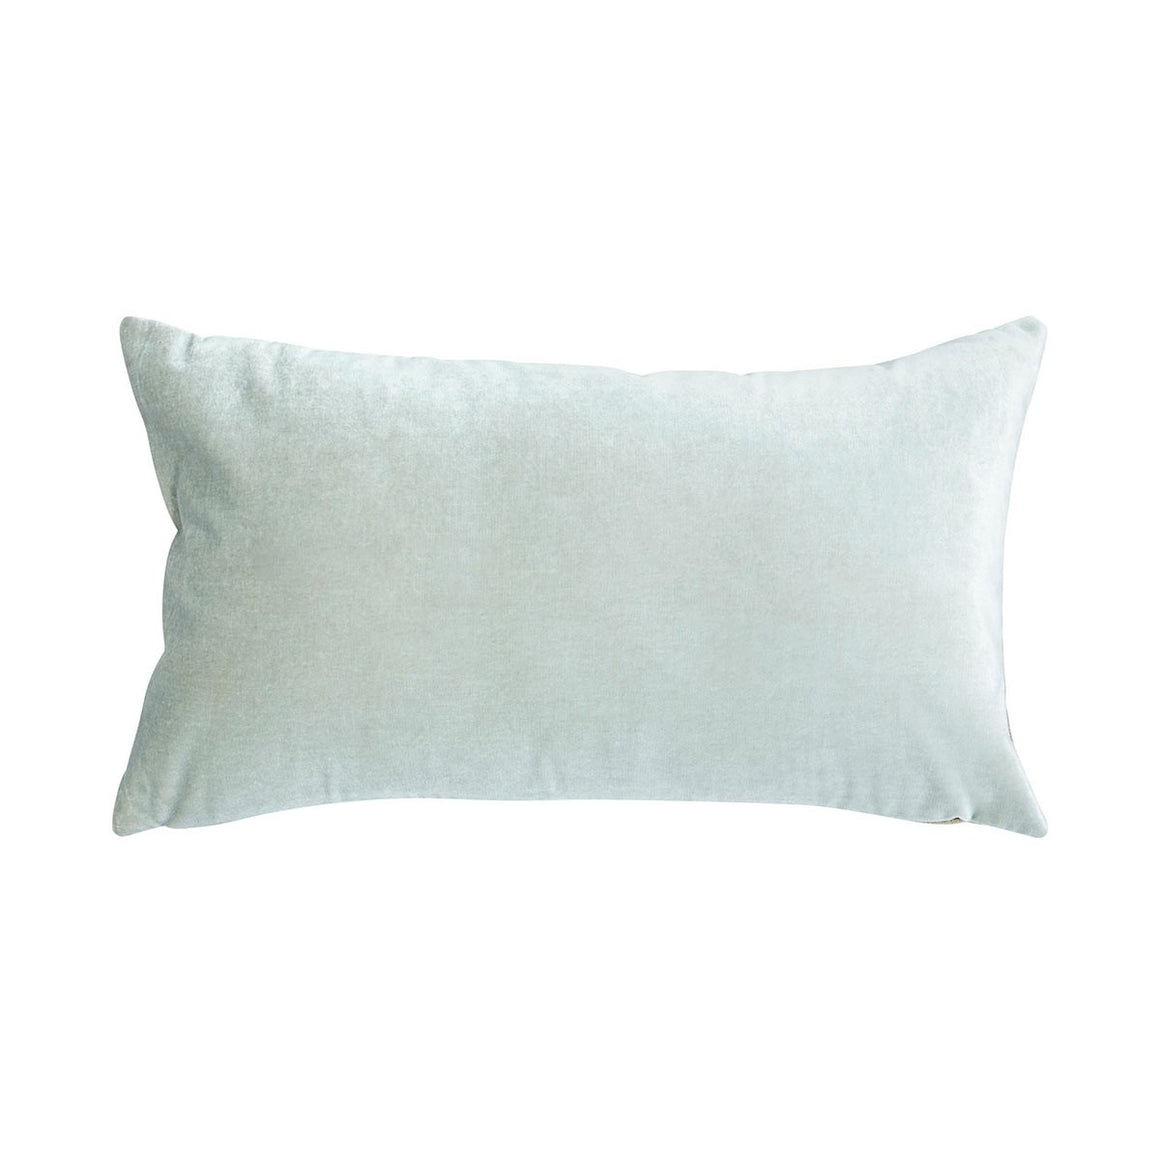 Ice Velvet Cushion